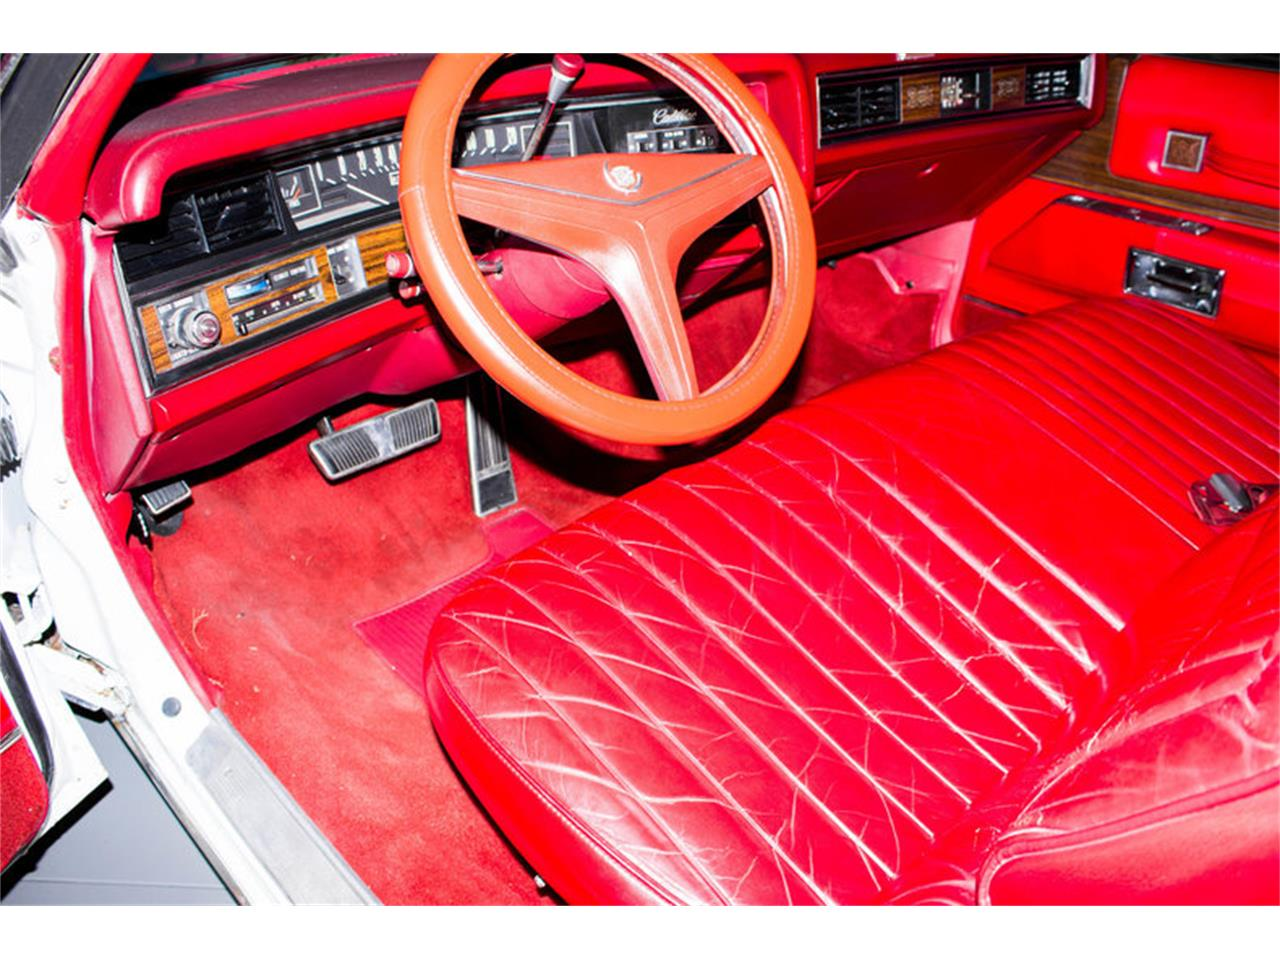 Large Picture of Classic '73 Cadillac Eldorado Offered by Skyway Classics - MD5Y